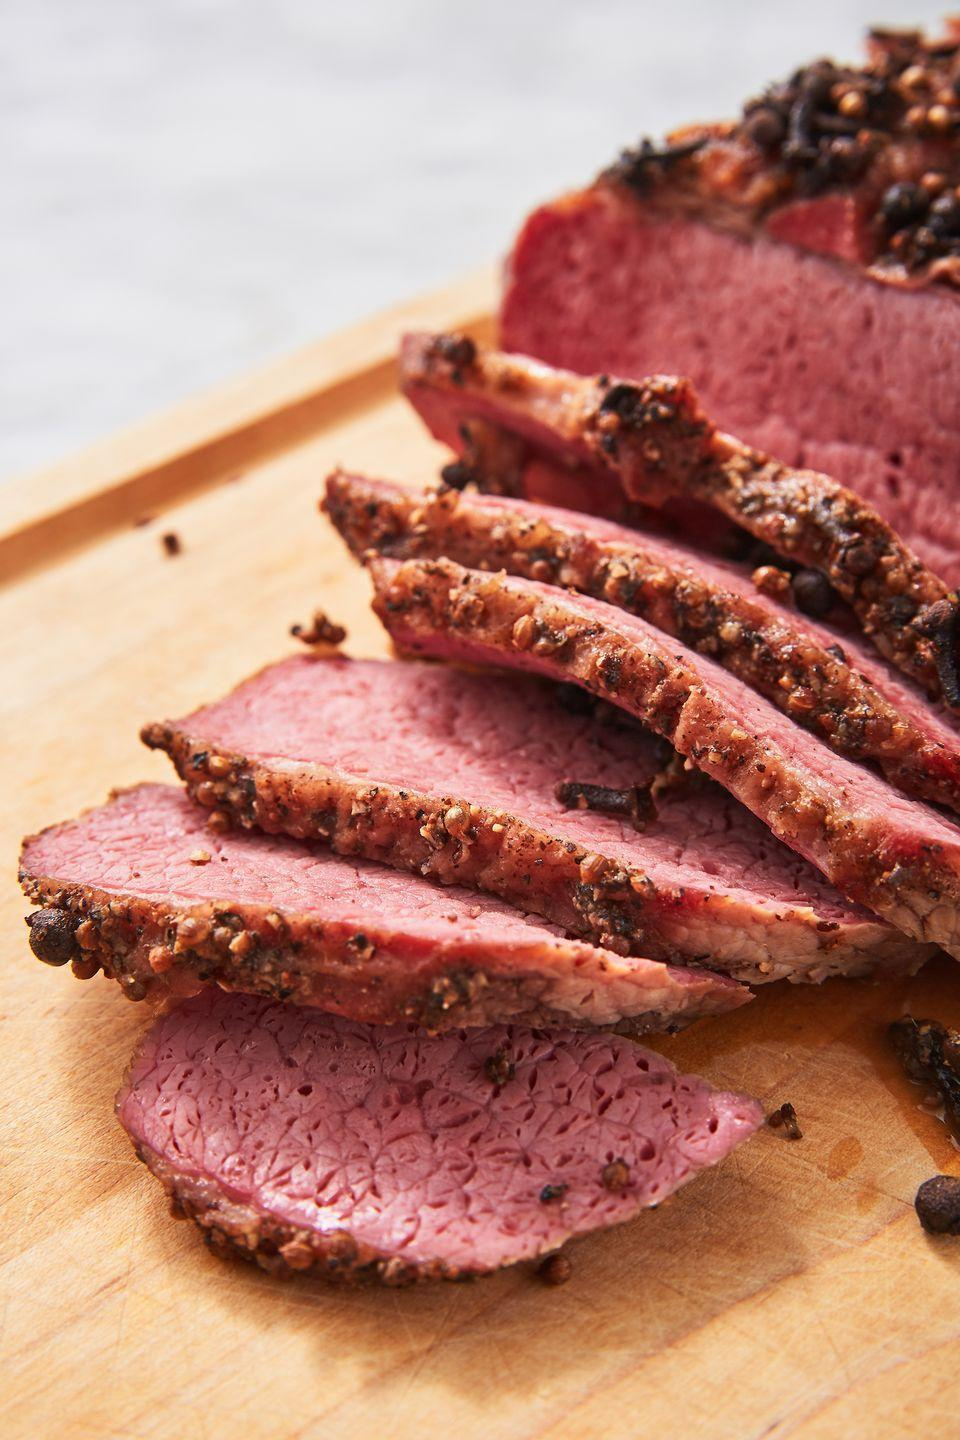 """<p>Corned beef isn't *just* for St. Patrick's Day. </p><p>Get the recipe from <a href=""""https://www.delish.com/cooking/recipe-ideas/a26413859/corned-beef-brisket-recipe/"""" rel=""""nofollow noopener"""" target=""""_blank"""" data-ylk=""""slk:Delish"""" class=""""link rapid-noclick-resp"""">Delish</a>.</p>"""